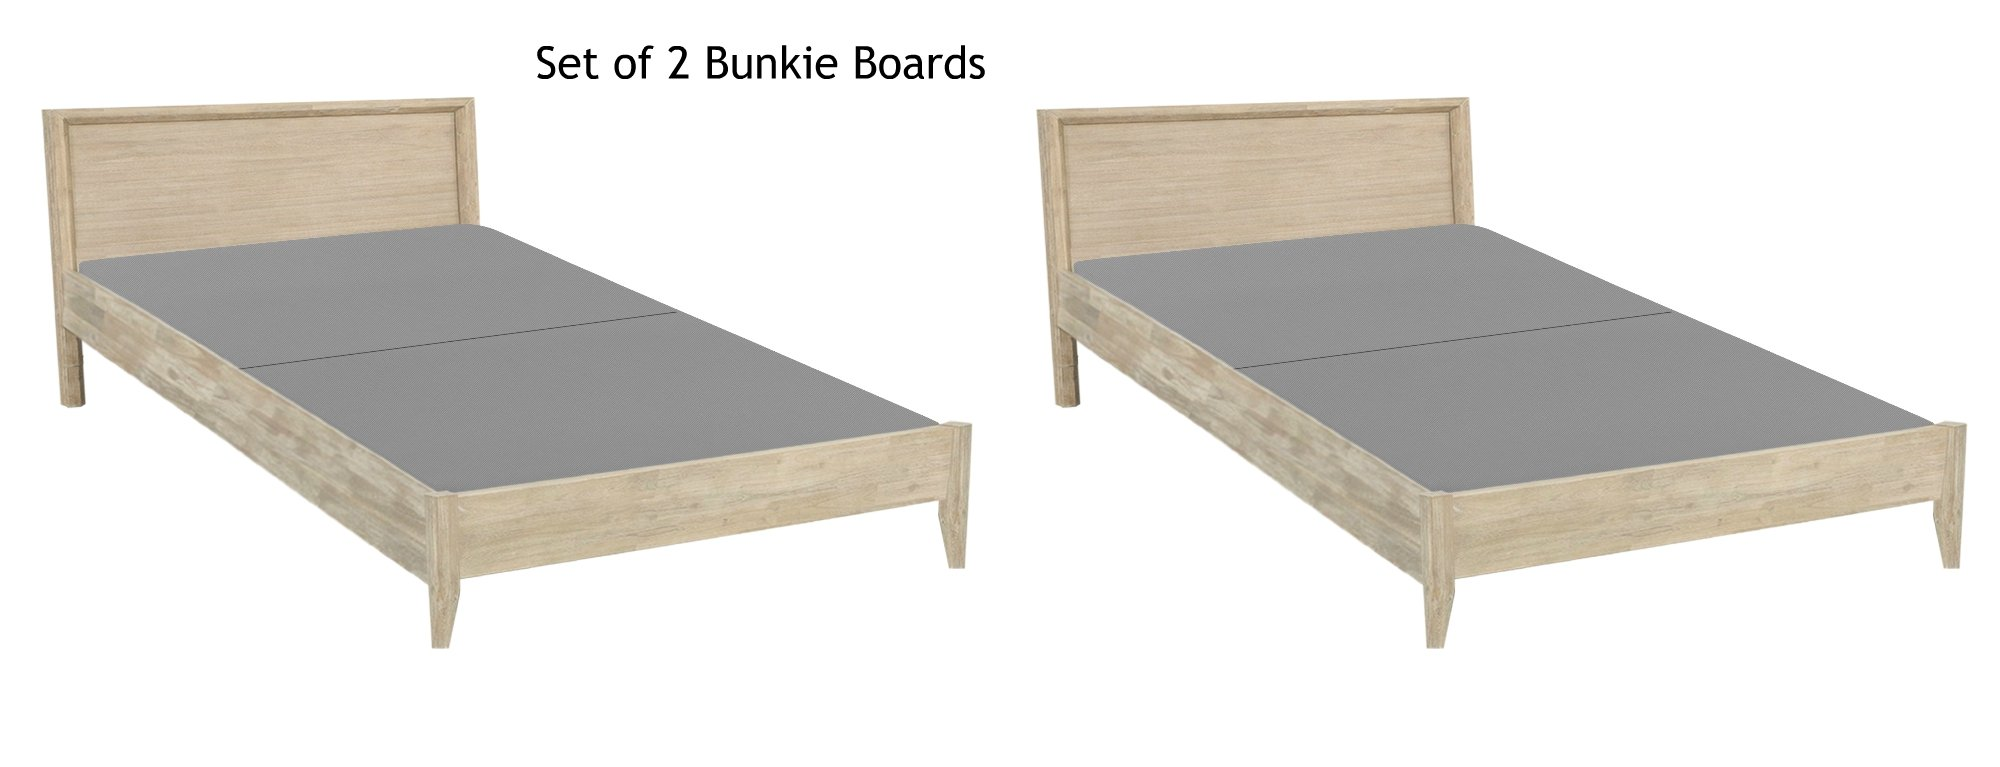 Continental Sleep, Fully Assembled Split 2'' Foundation Bunkie Board, Set of 2 |Twin Size| (4 halves Included) by Continental Sleep